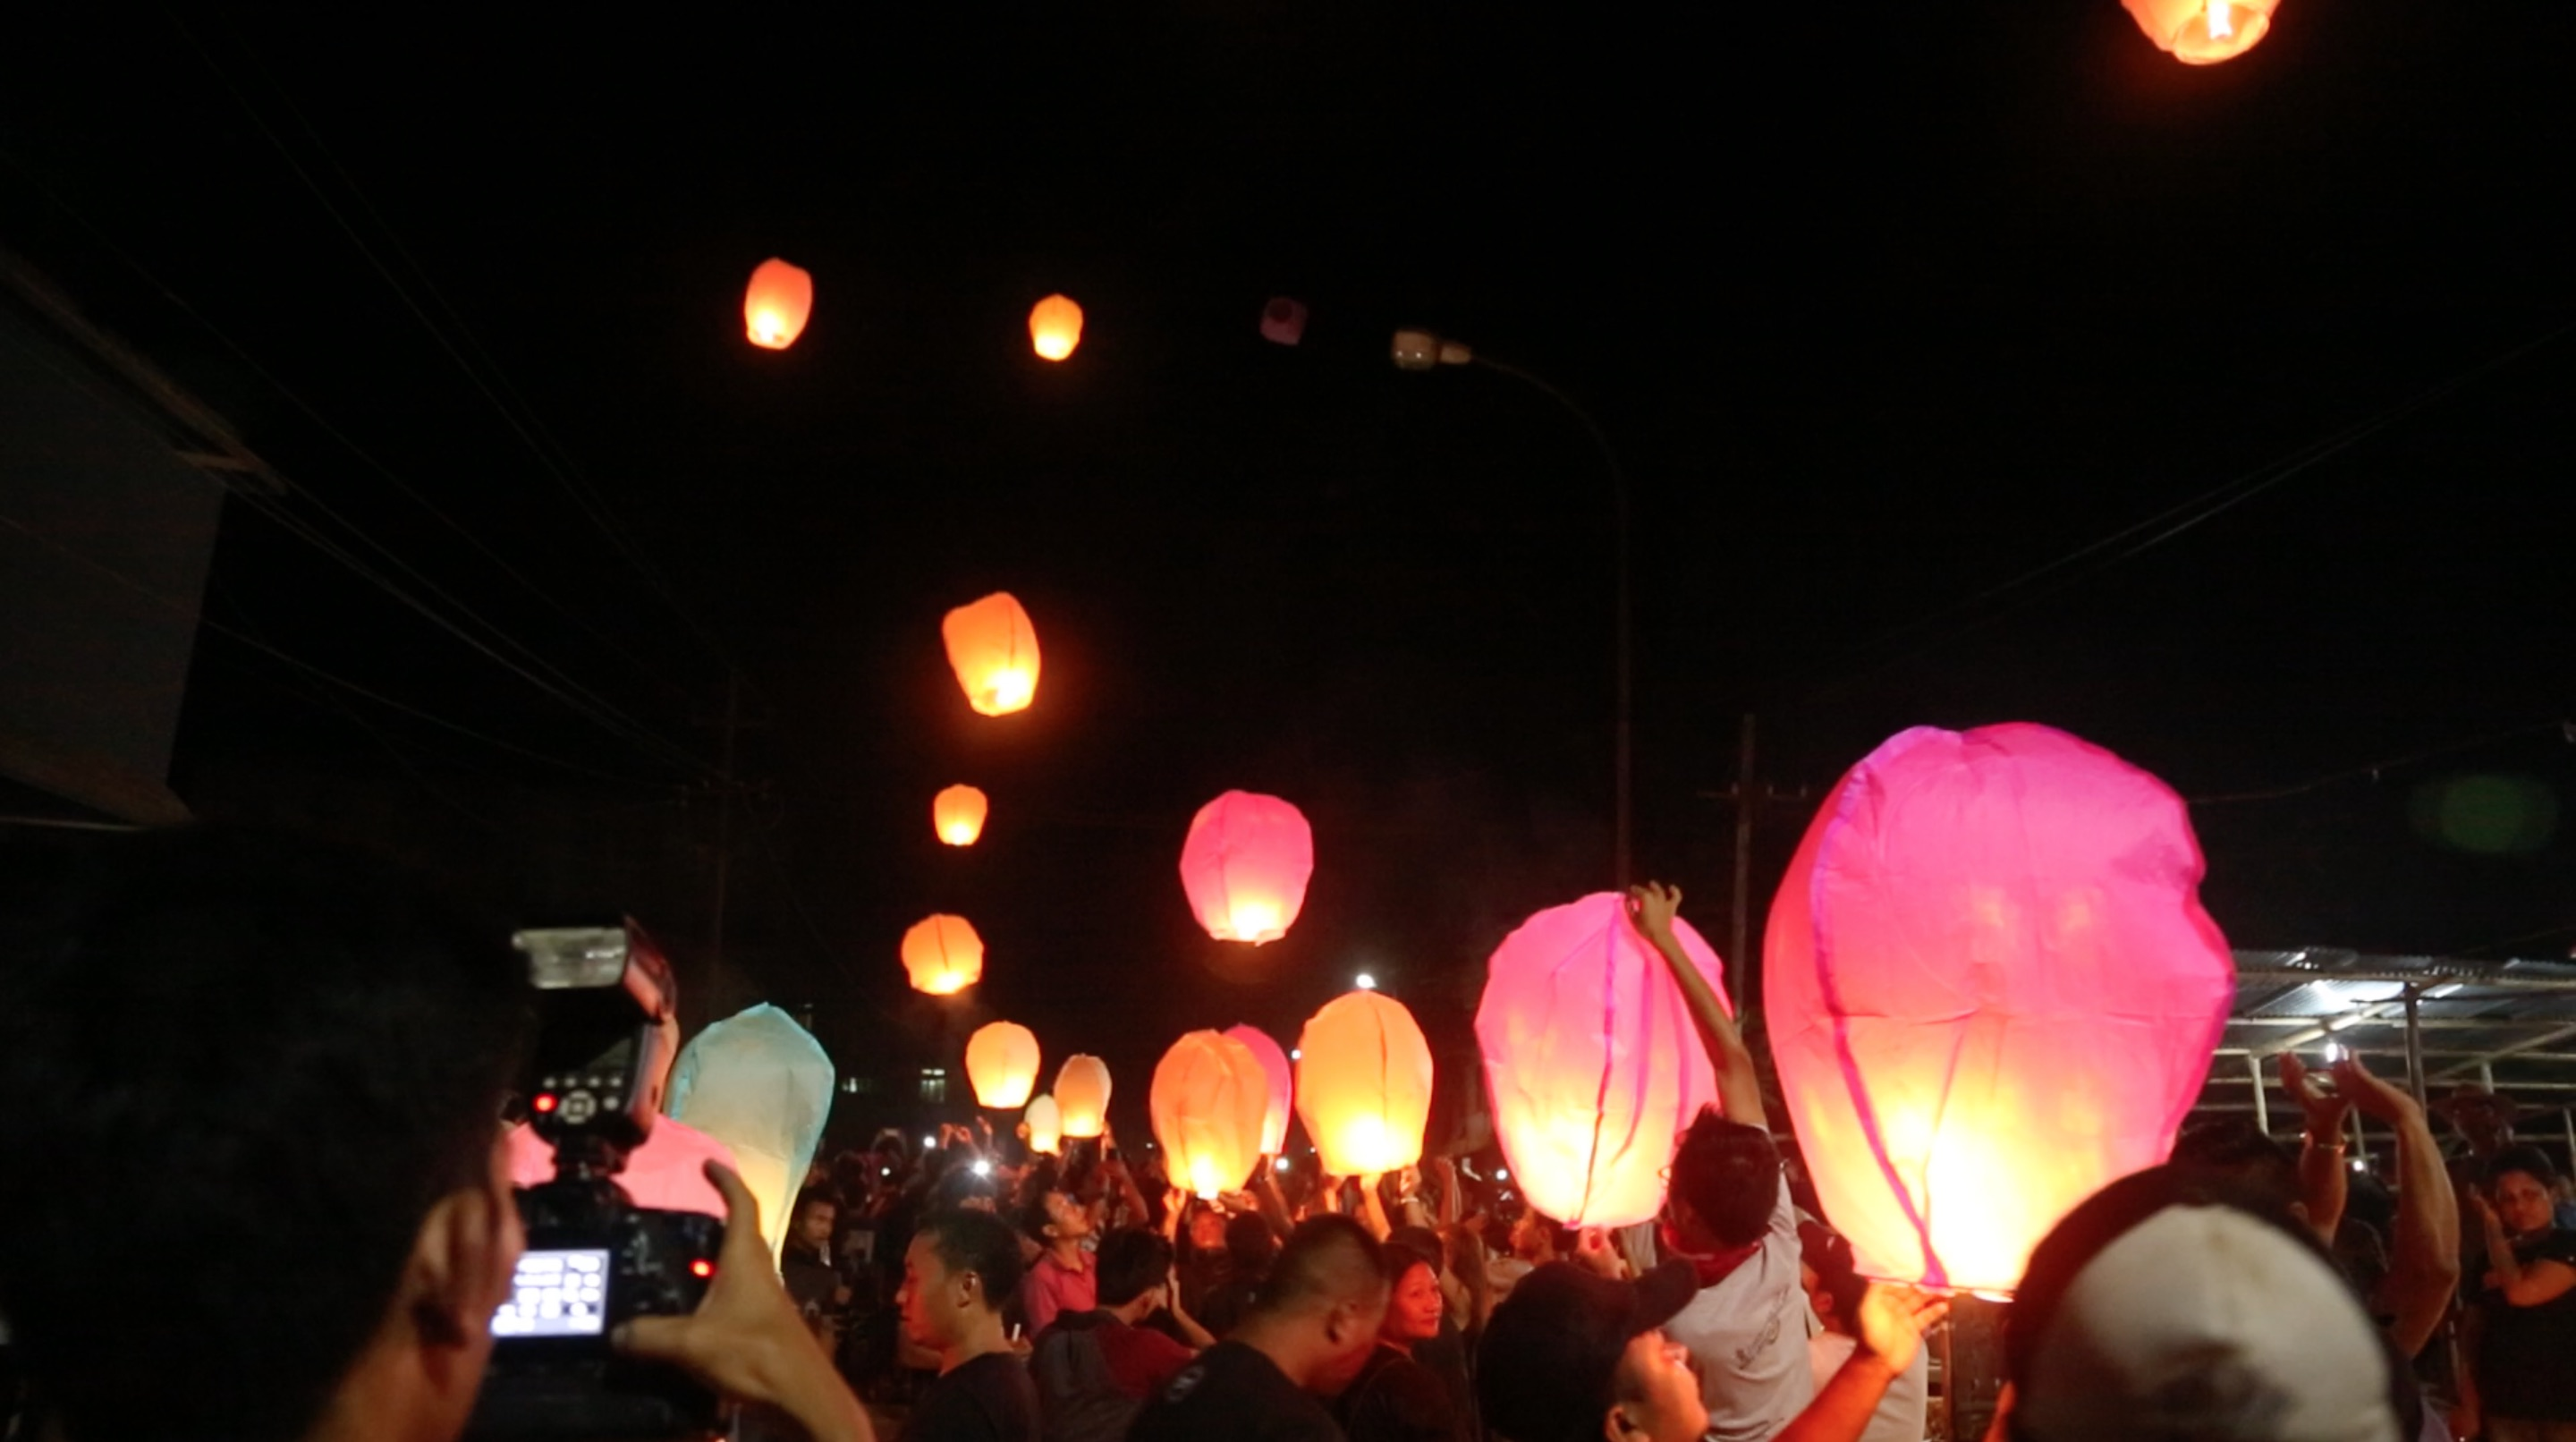 Many sky lanterns were released at the end of the meeting to pay respect to the deceased. August 31, 2016. Credit: Akhil Kumar